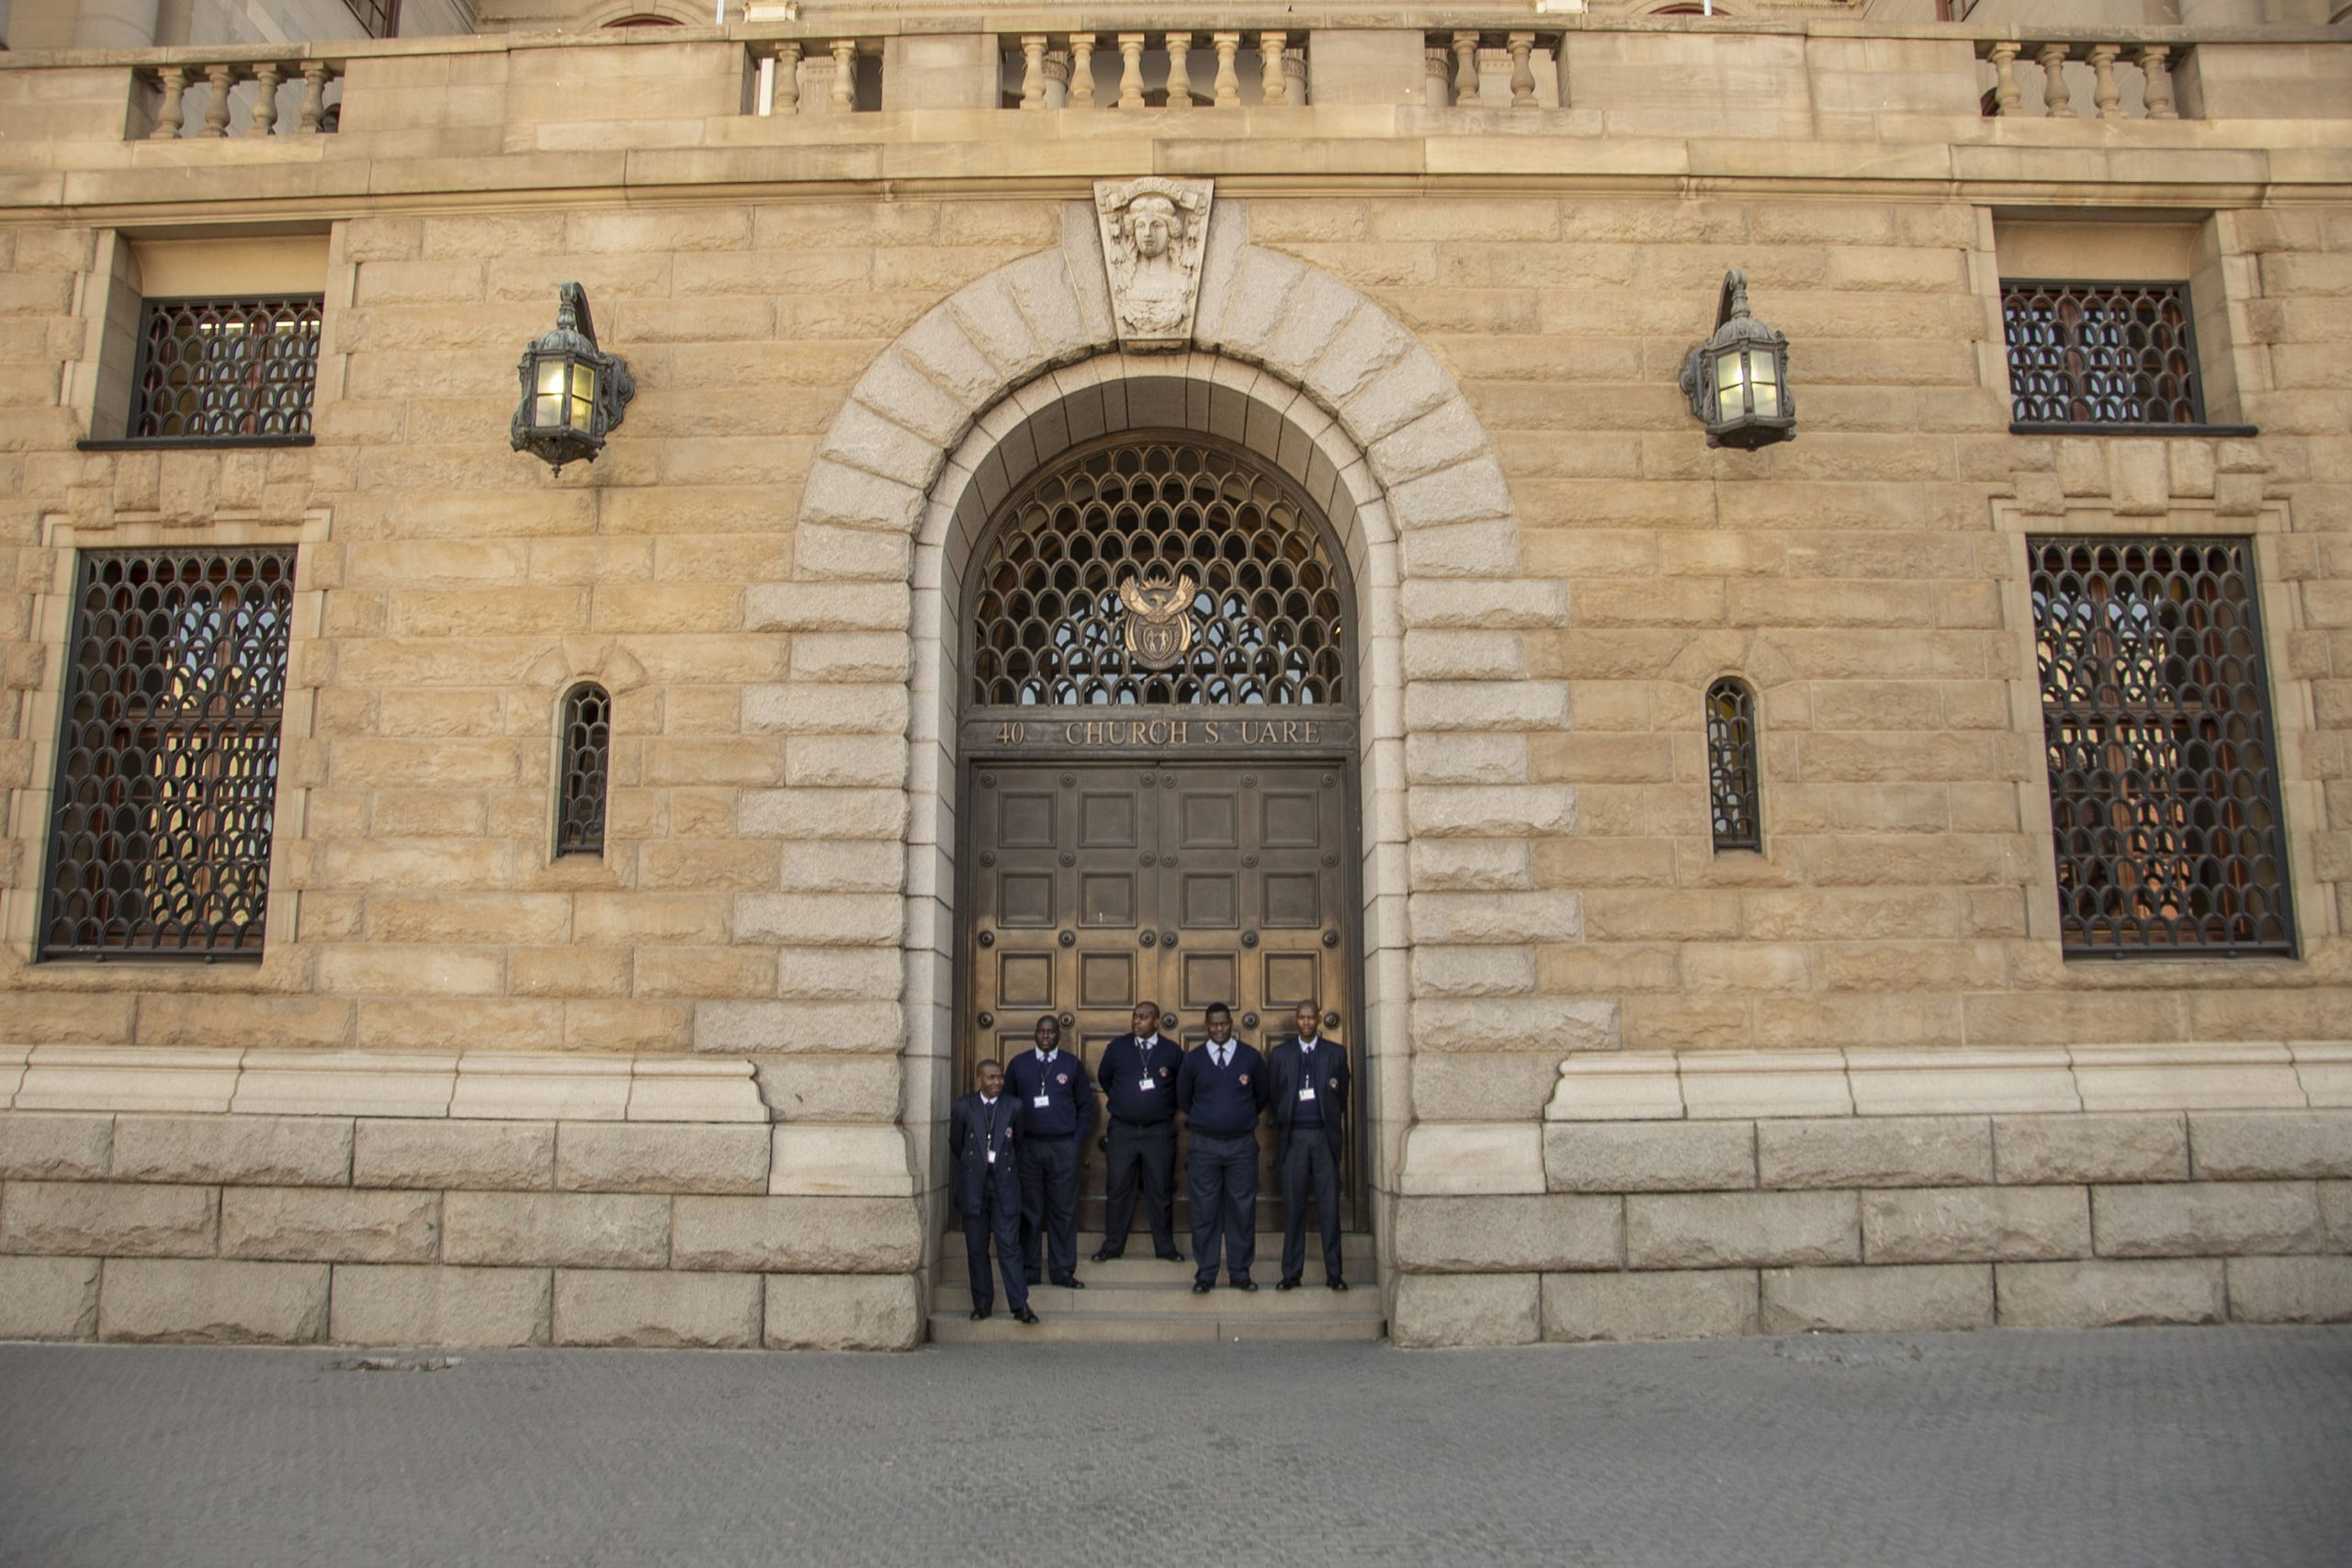 20 July 2017: Security guards outside the National Treasury in Pretoria, which labour federations say is on a path of austerity that is proving to be a stumbling block in the bid for a massive stimulus package.